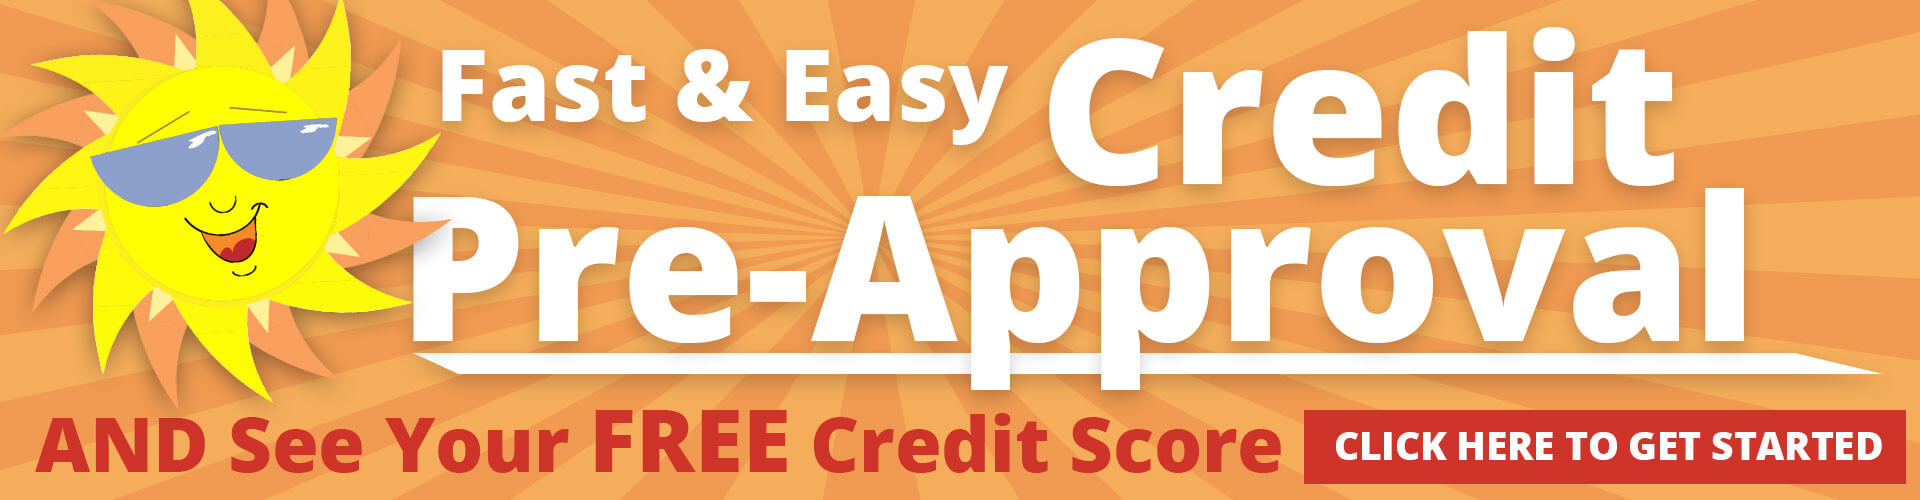 Get Pre-Approved Instantly & See Your Free Credit Score